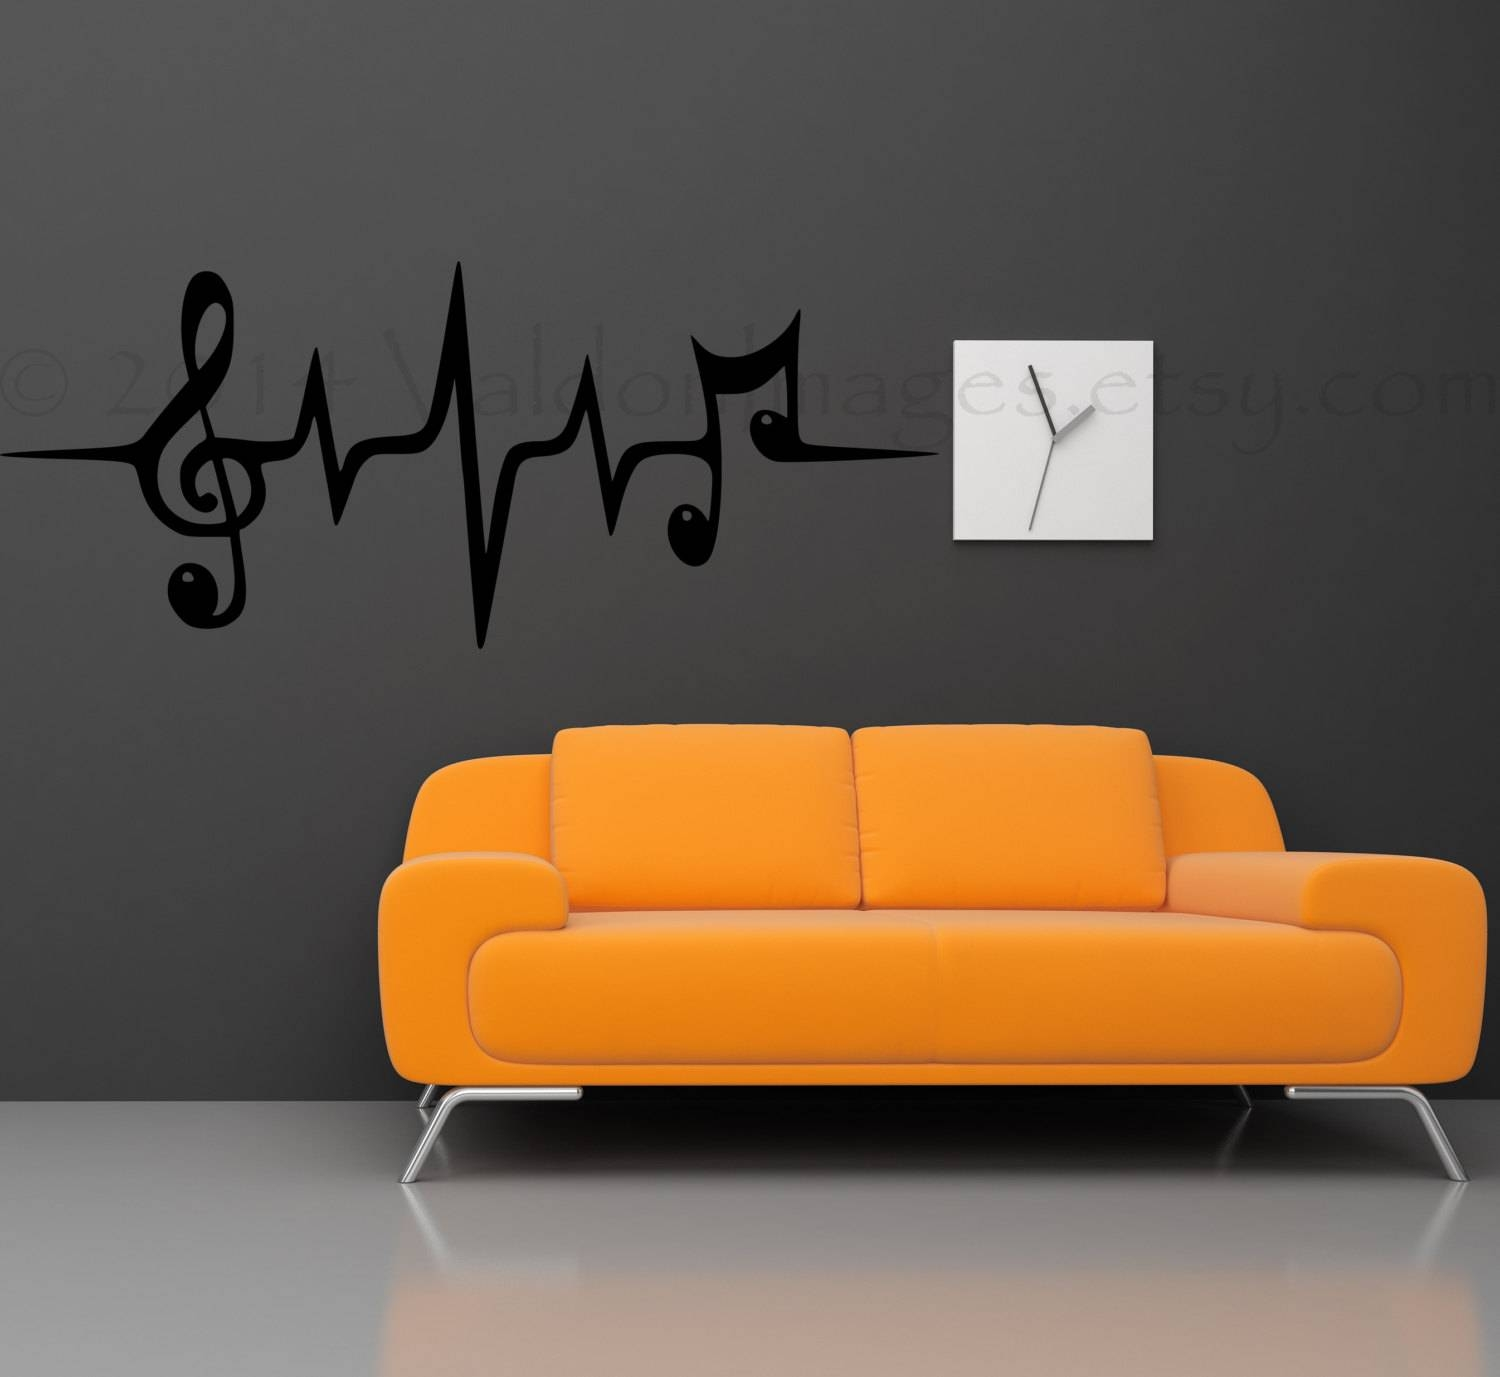 Music Note Wall Decal Music Wall Decal Heartbeat Wall For Most Recent Music Note Wall Art Decor (View 8 of 20)